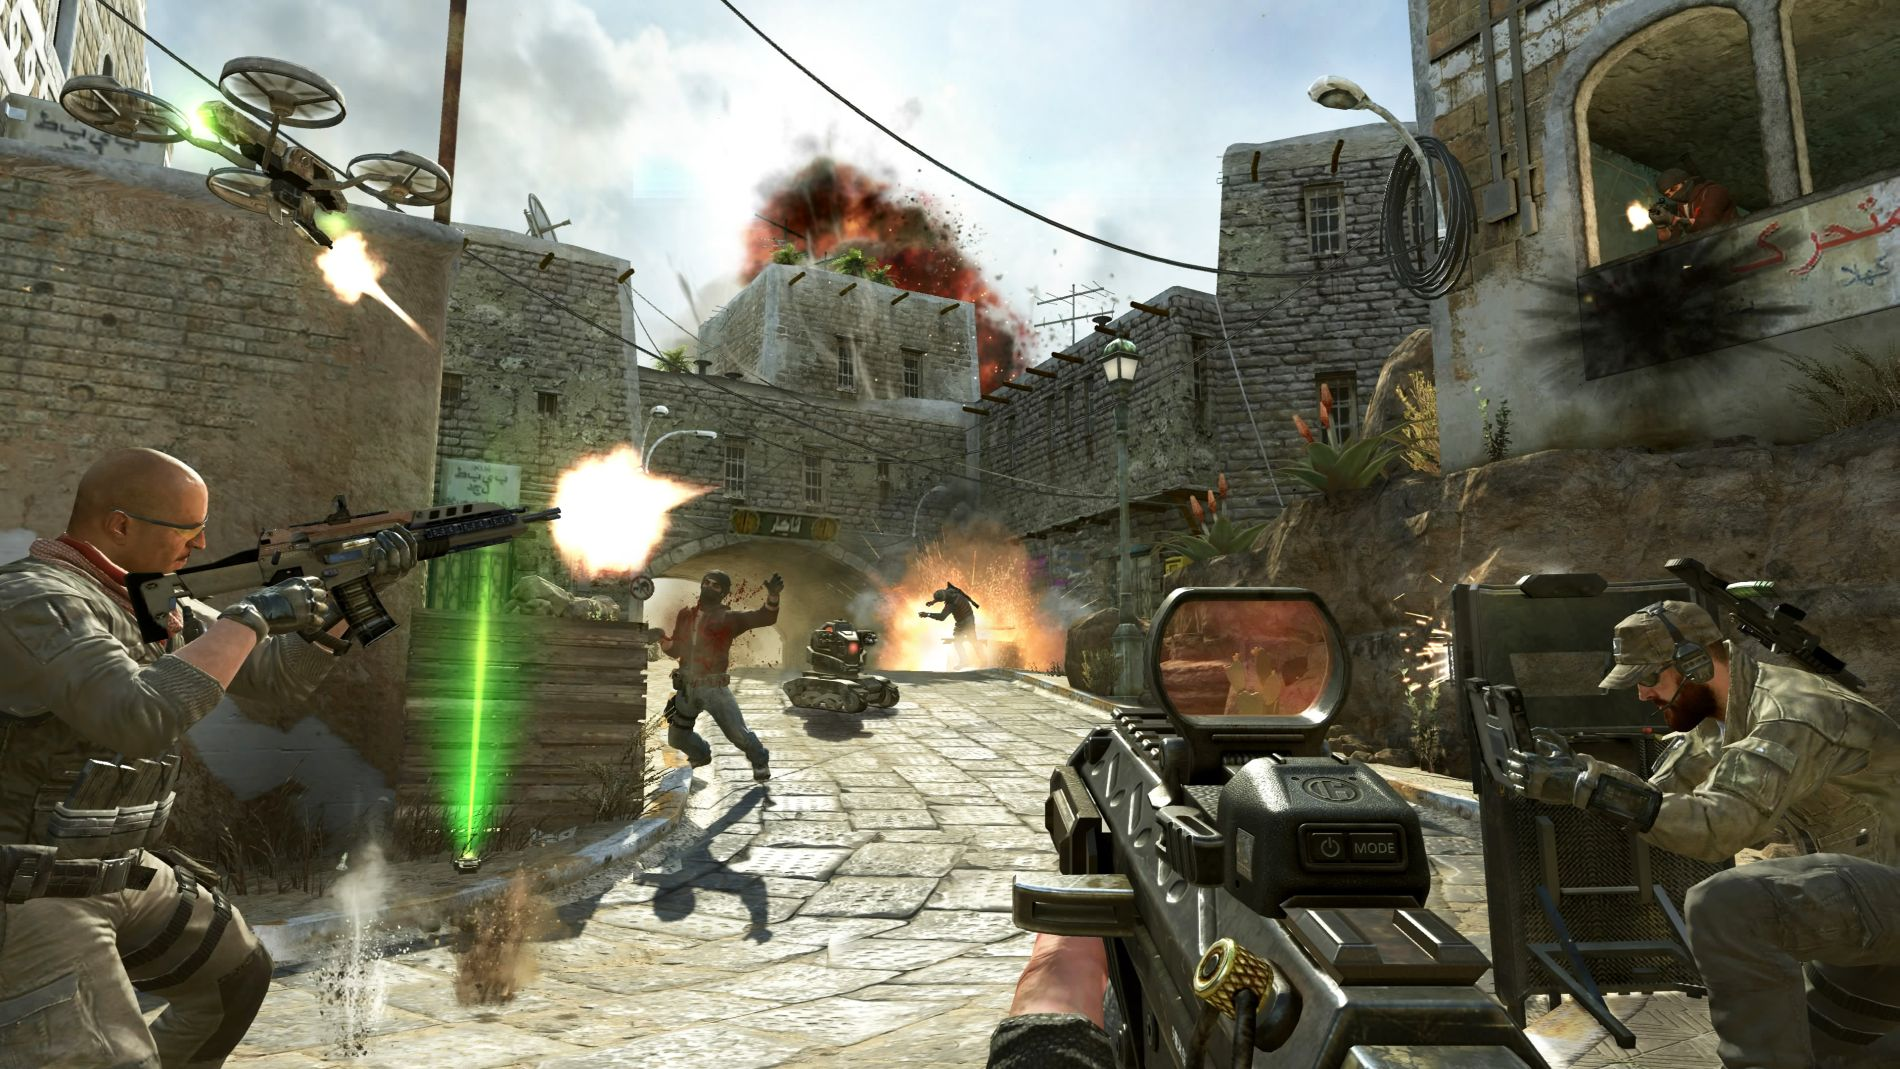 Infinity Ward To Release Call Of Duty 5,6,7, and 8 All Next Month